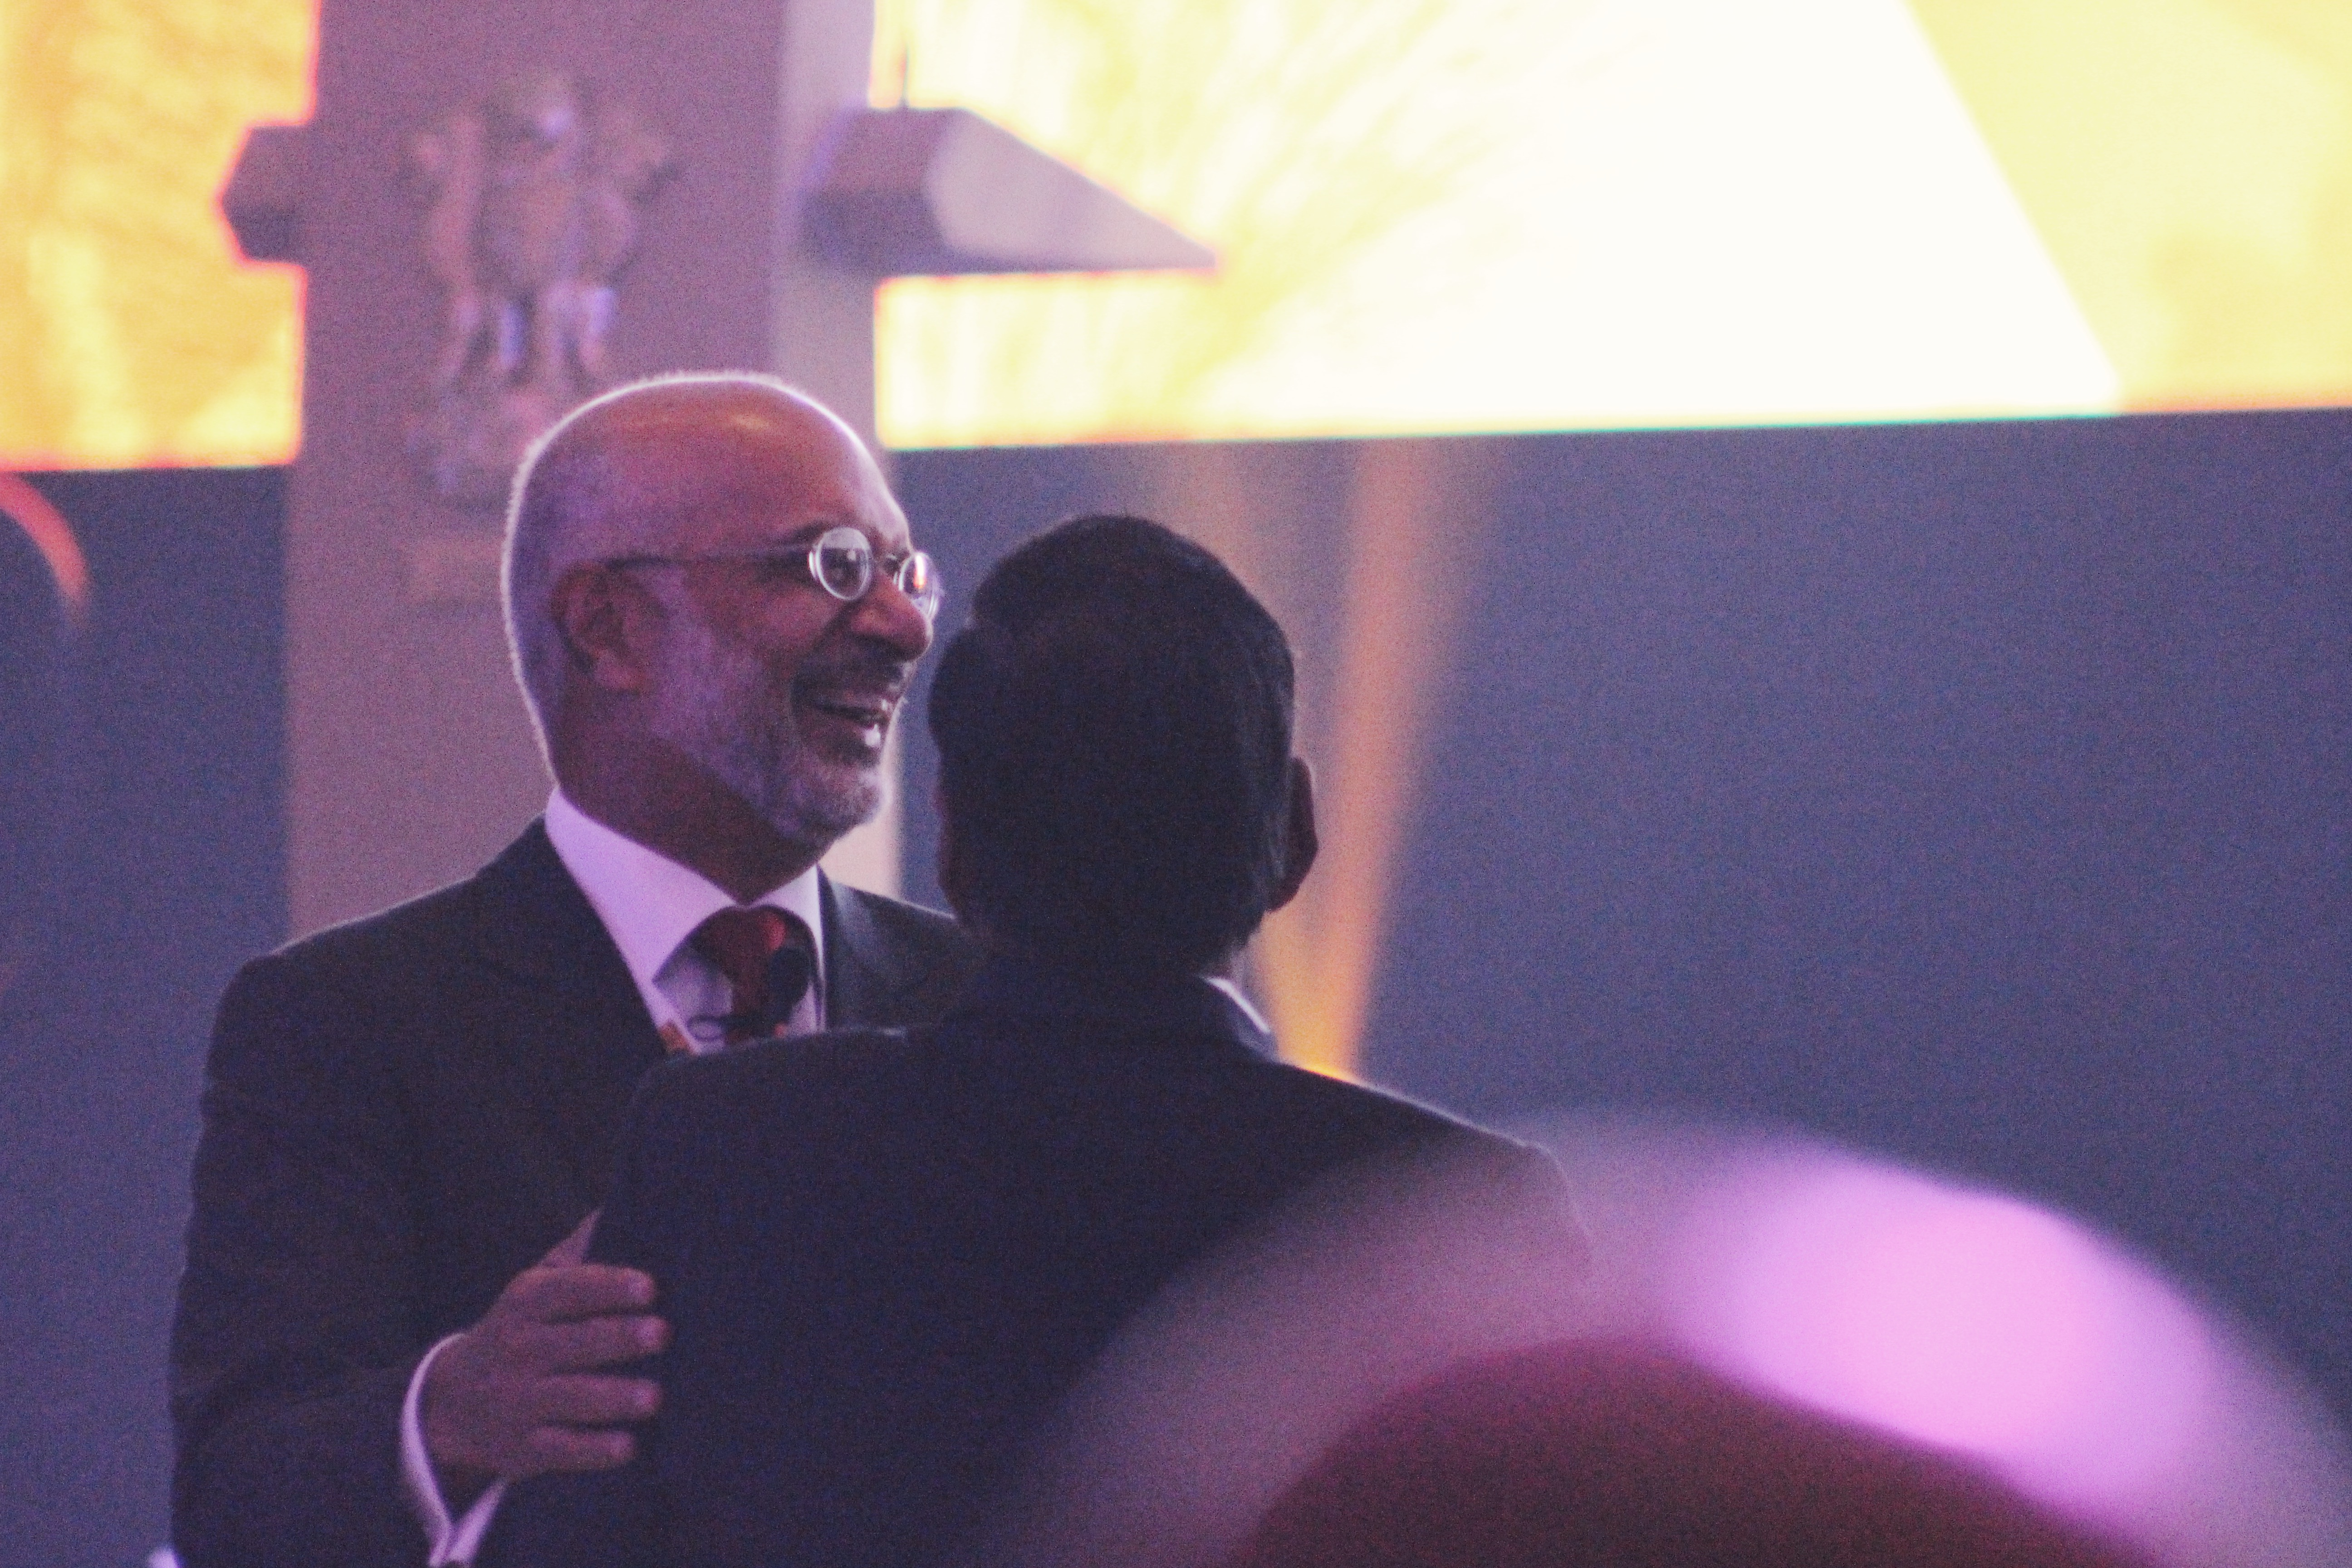 Piyush Gupta, Chief Executive Officer and Director of DBS Group, seen at the summit. Photo: Connected to India